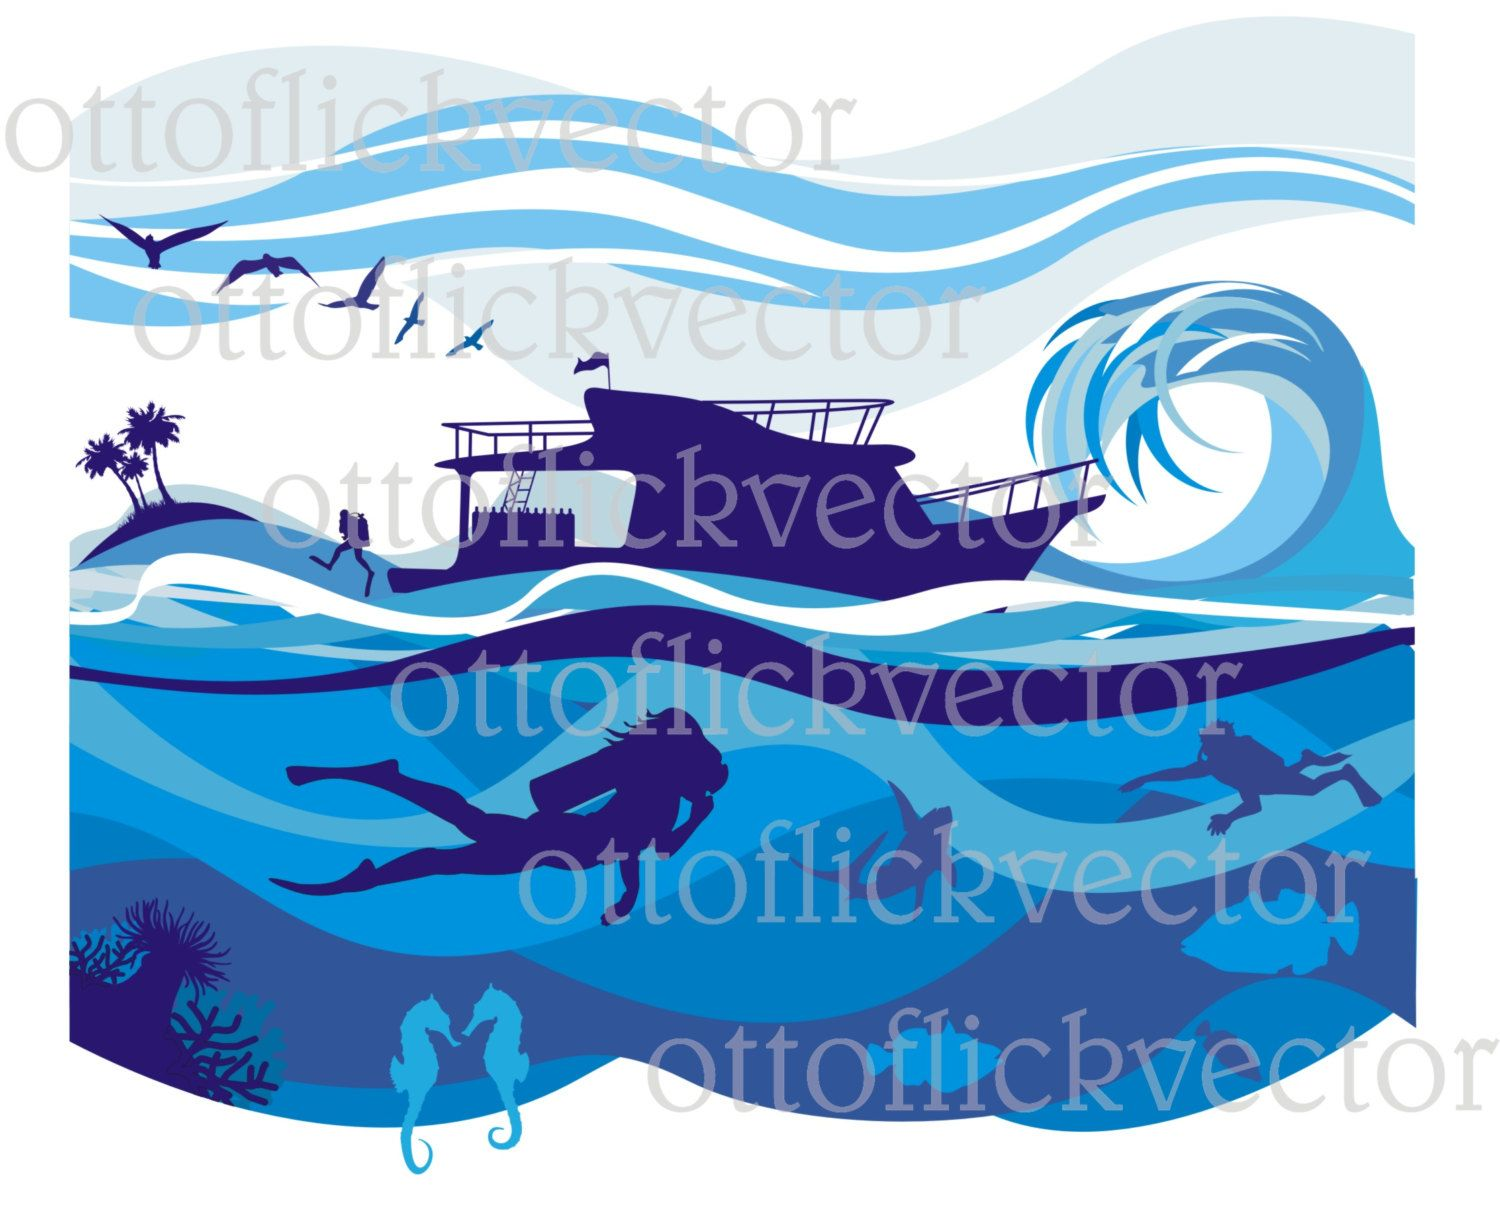 VACATION VECTOR CLIPART, water sport, leisure background and banner eps, ai, cdr, png, jpg, deep sea diving, tropical resort, marine life by ottoflickvector on Etsy